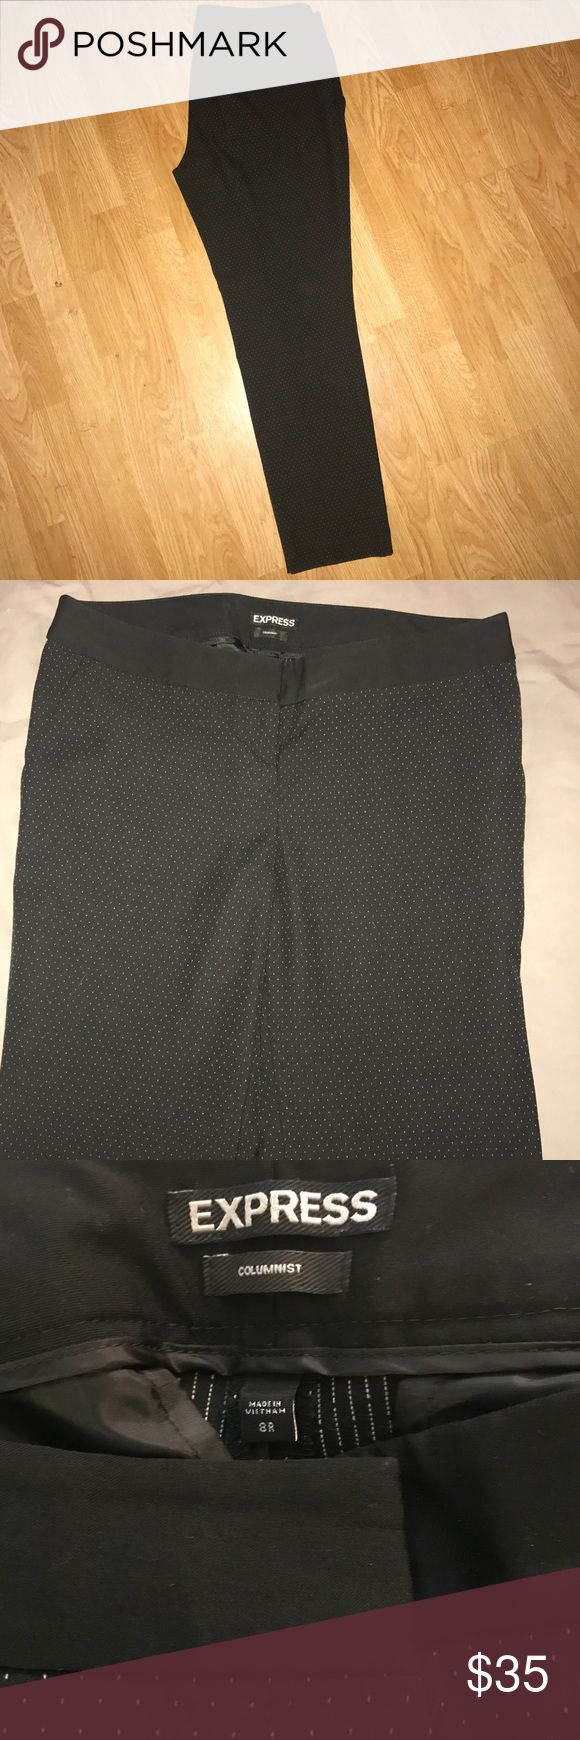 Express Columnist ankle pants Express Columnist ankle pants in black with white pinstripping. Size 8R mid rise. Express Pants Ankle & Cropped